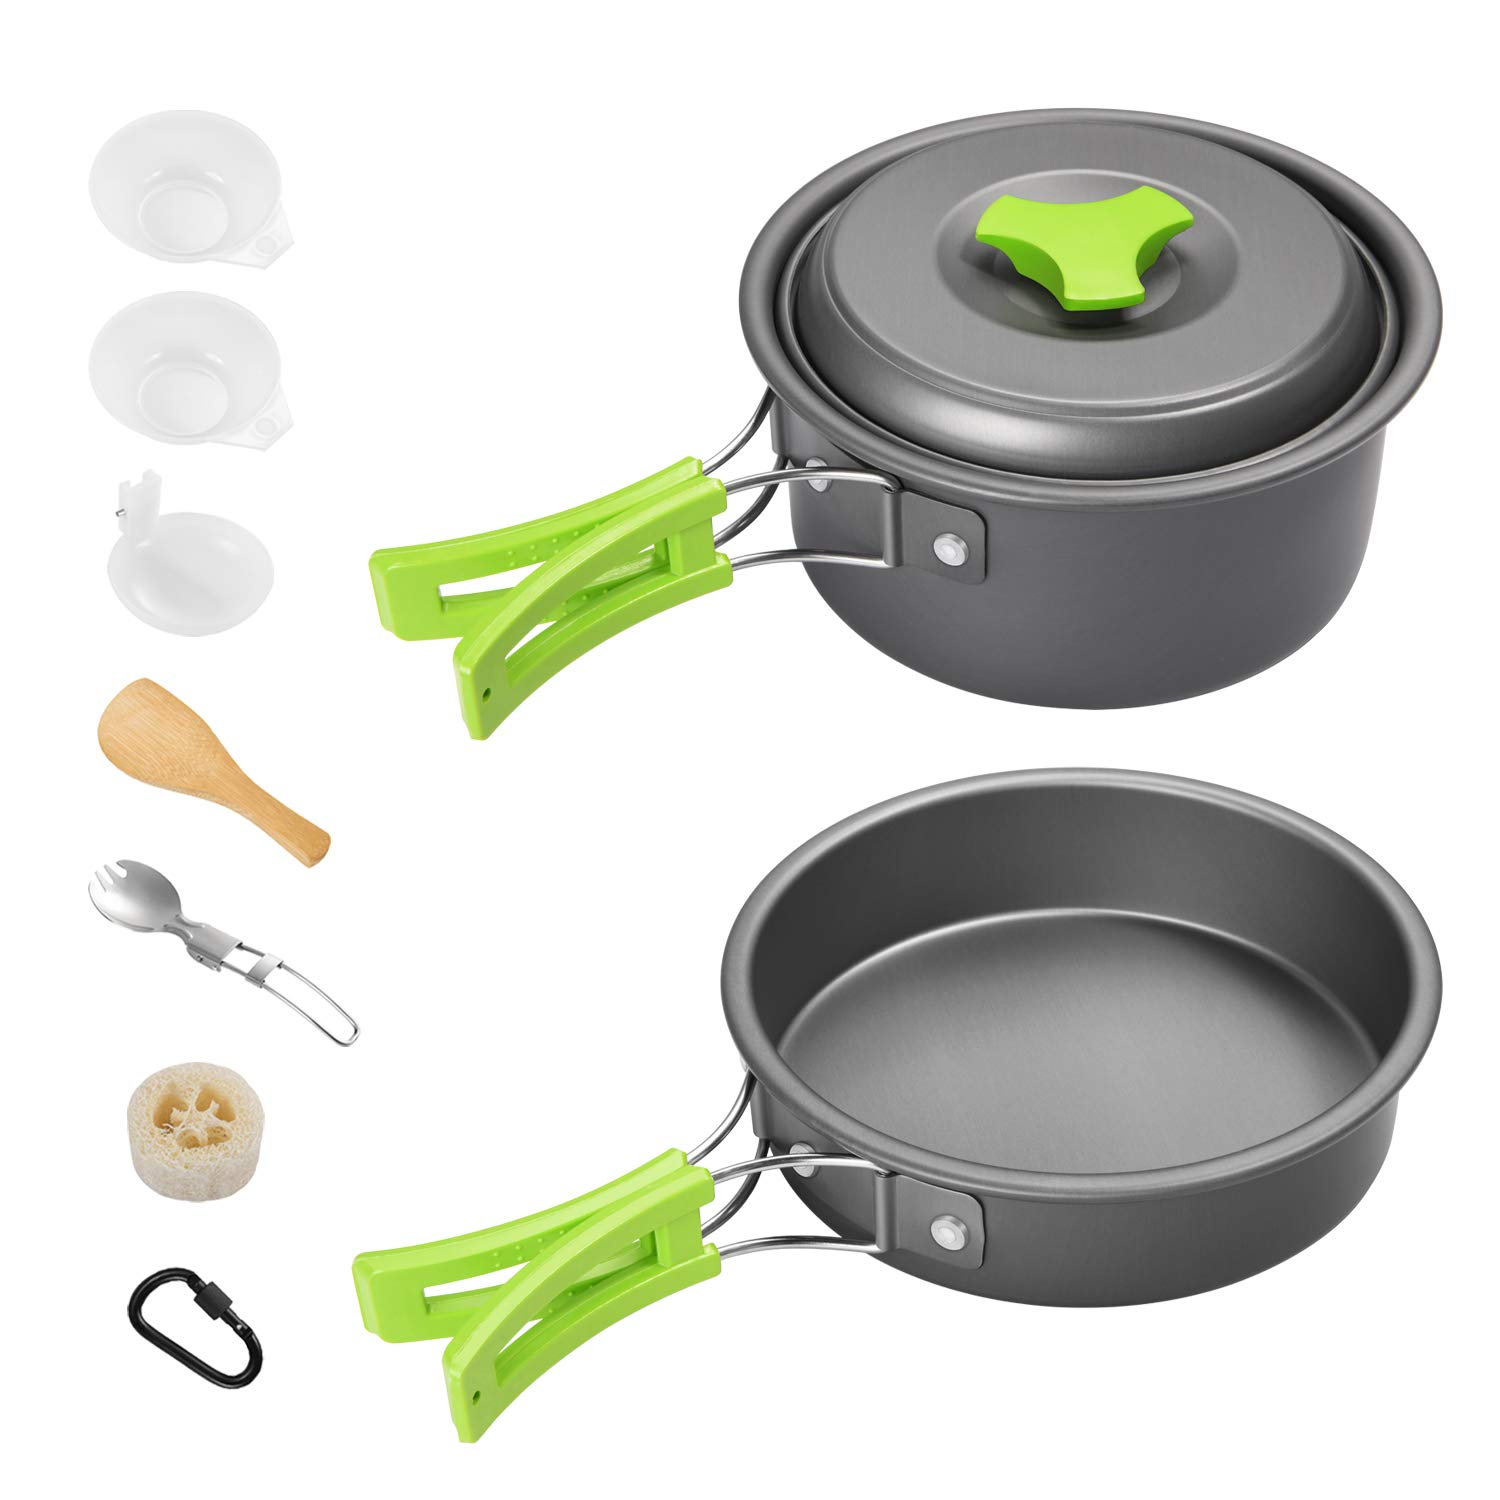 Gonex Camping Cookware Set Mess Kit, Backpacking Gear Cooking Equipment, Stackable Portable Non Stick Pot Pan Cook for Outdoors Hiking (Green 1L 11pcs) by Gonex